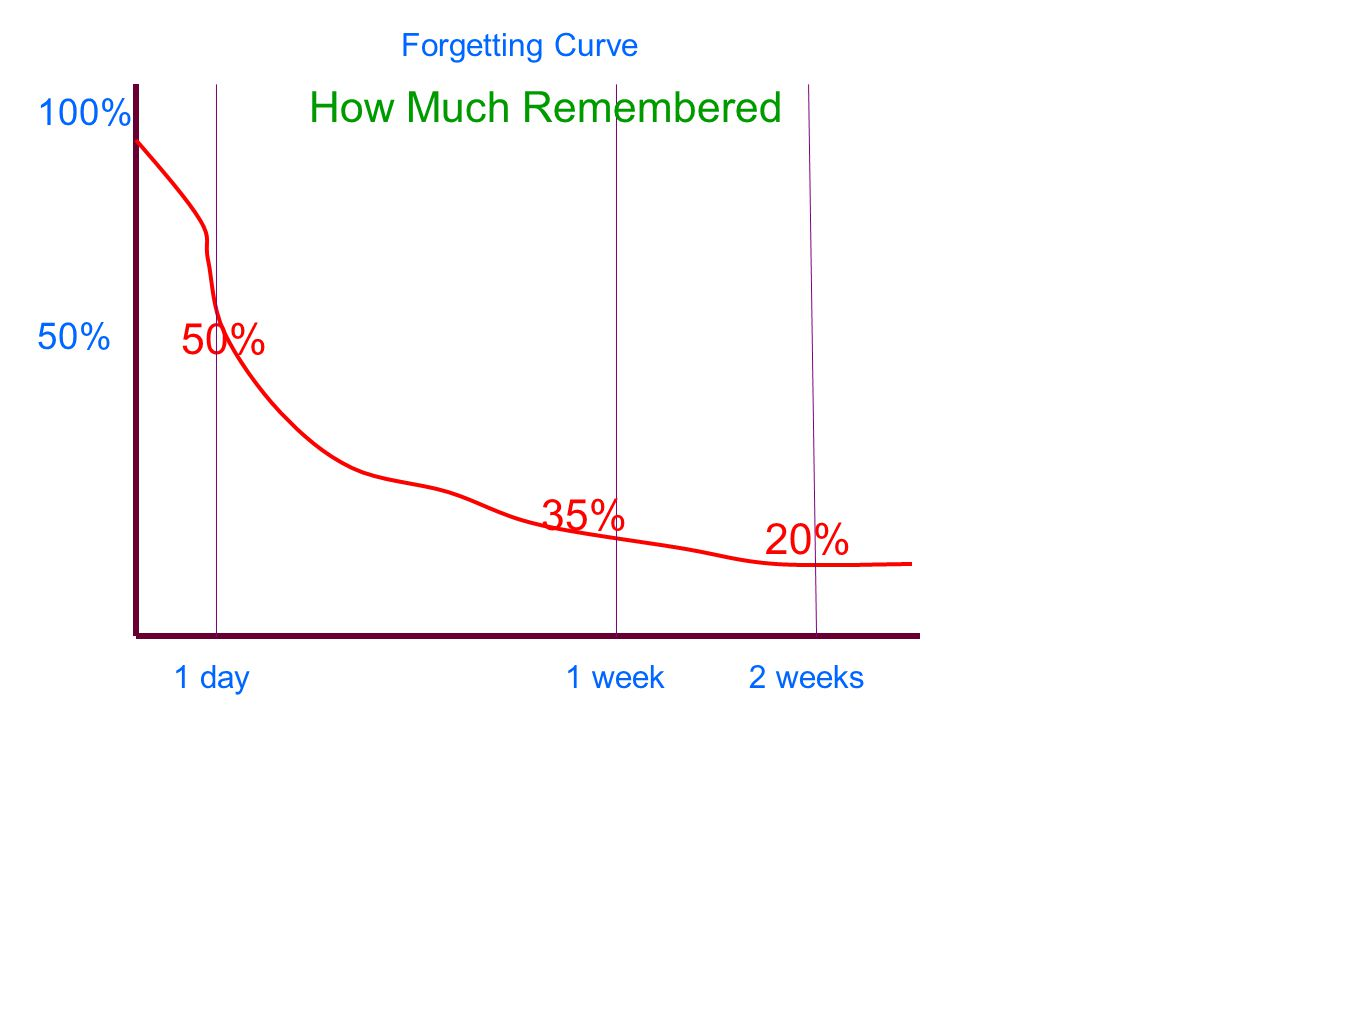 100% 50% 1 day1 week2 weeks Forgetting Curve 50% 20% 35% How Much Remembered